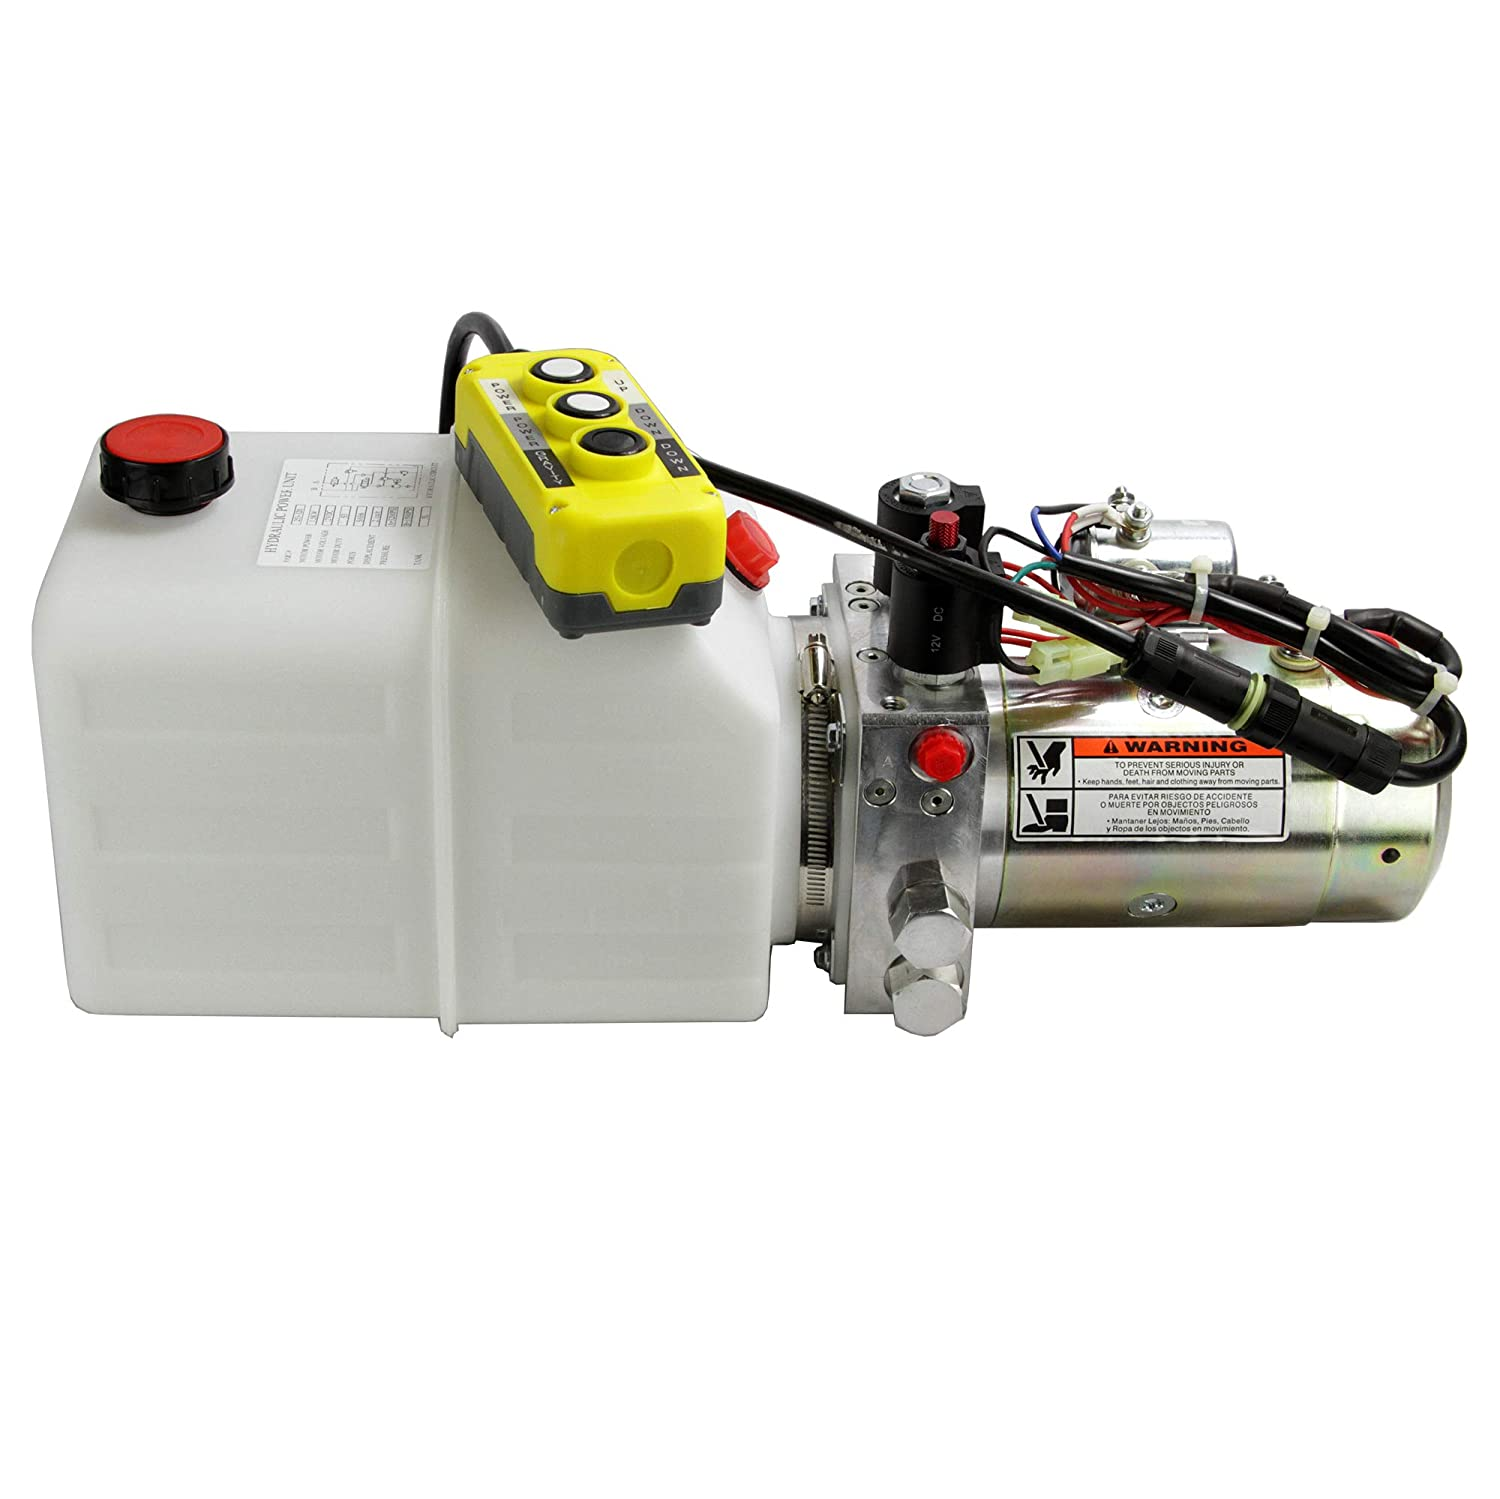 Hydraulic Power Unit 12V DC Double Acting, Solenoid Operated, 1.3 Gallon Poly Tank, 2850/1500 PSI, with 20 Foot Remote Control, 253309